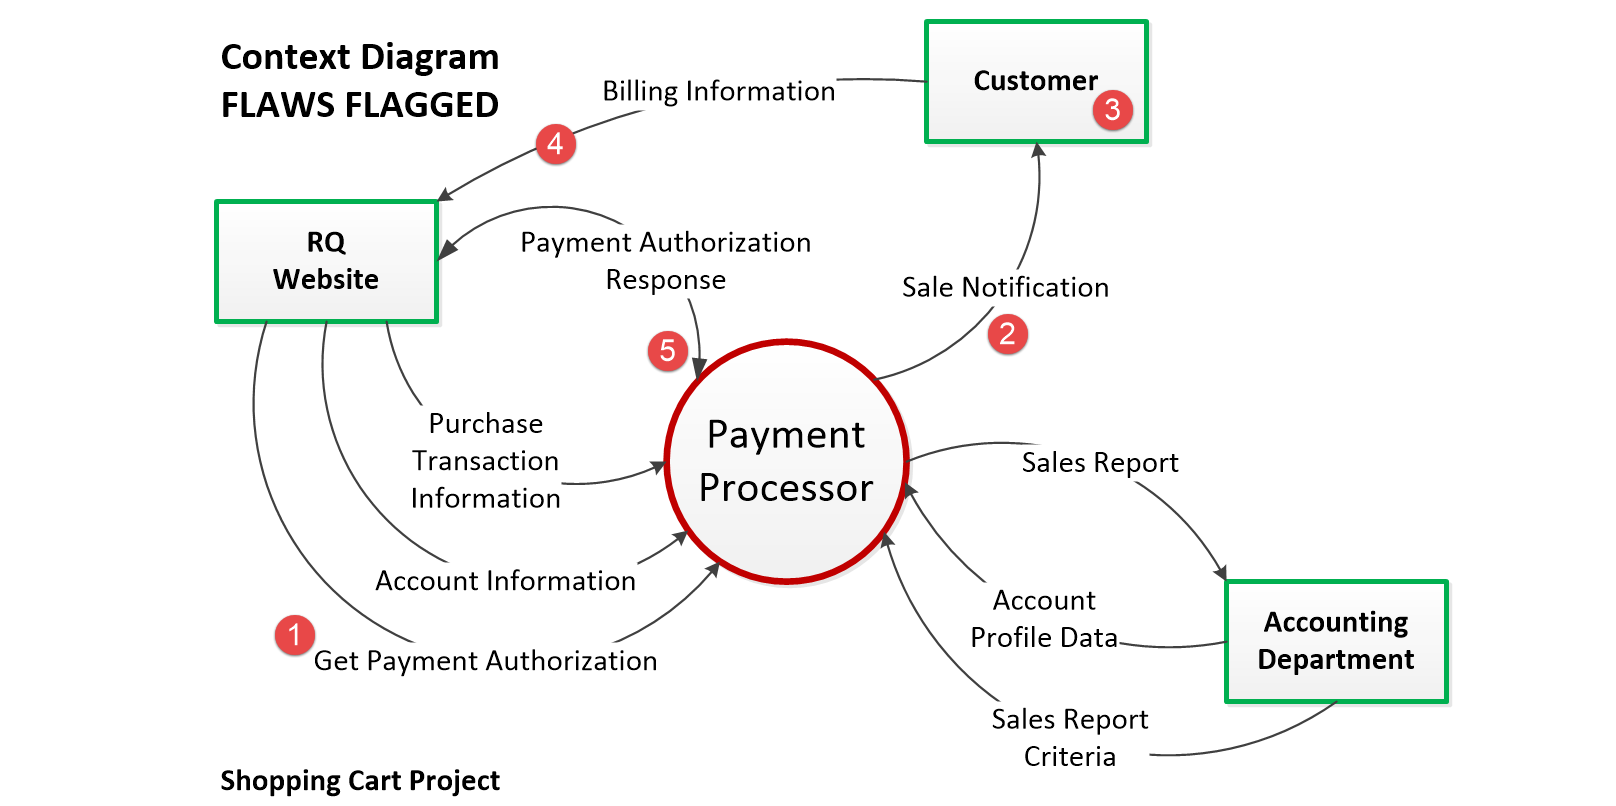 hight resolution of  context diagram flaws flagged png